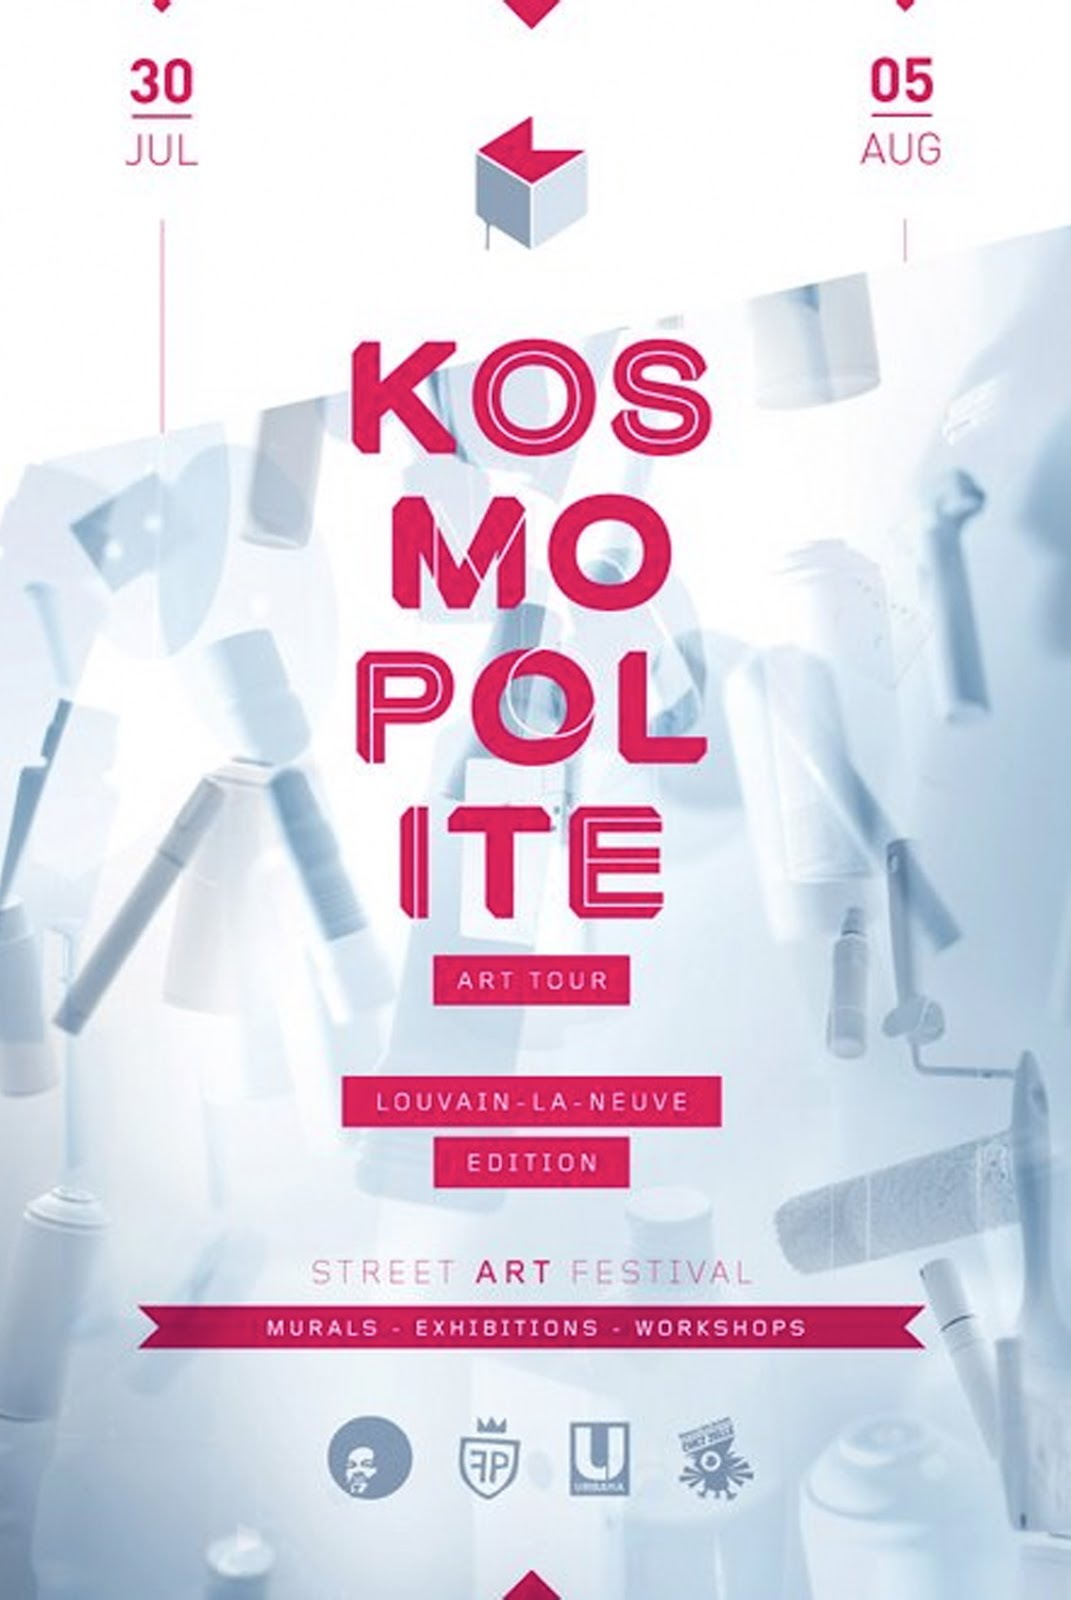 Kosmopolite art tour!